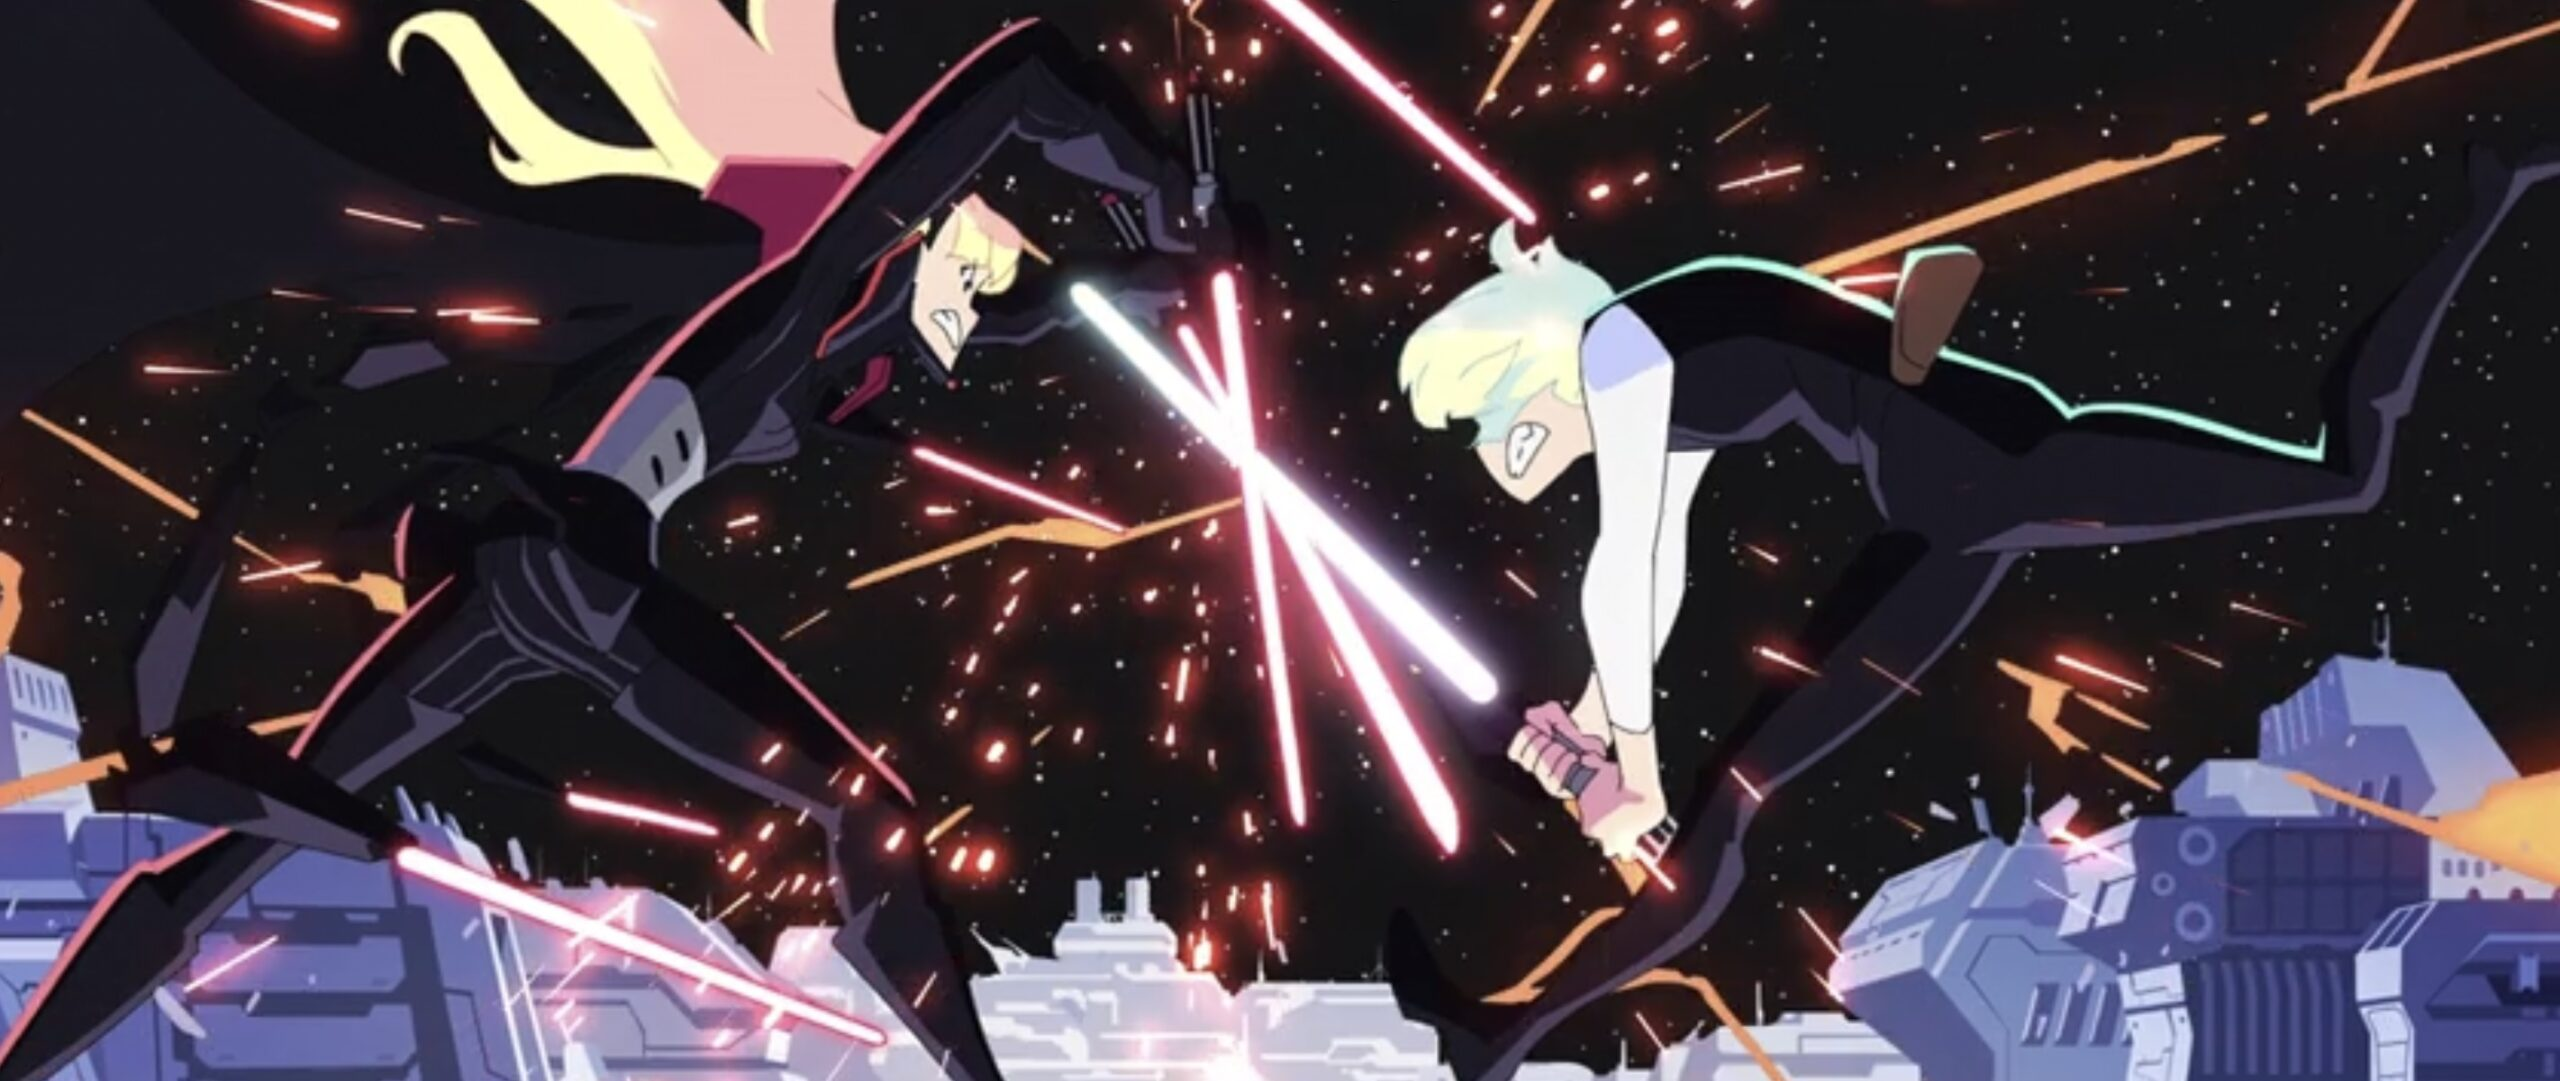 Star Wars: Visions THE TWINS